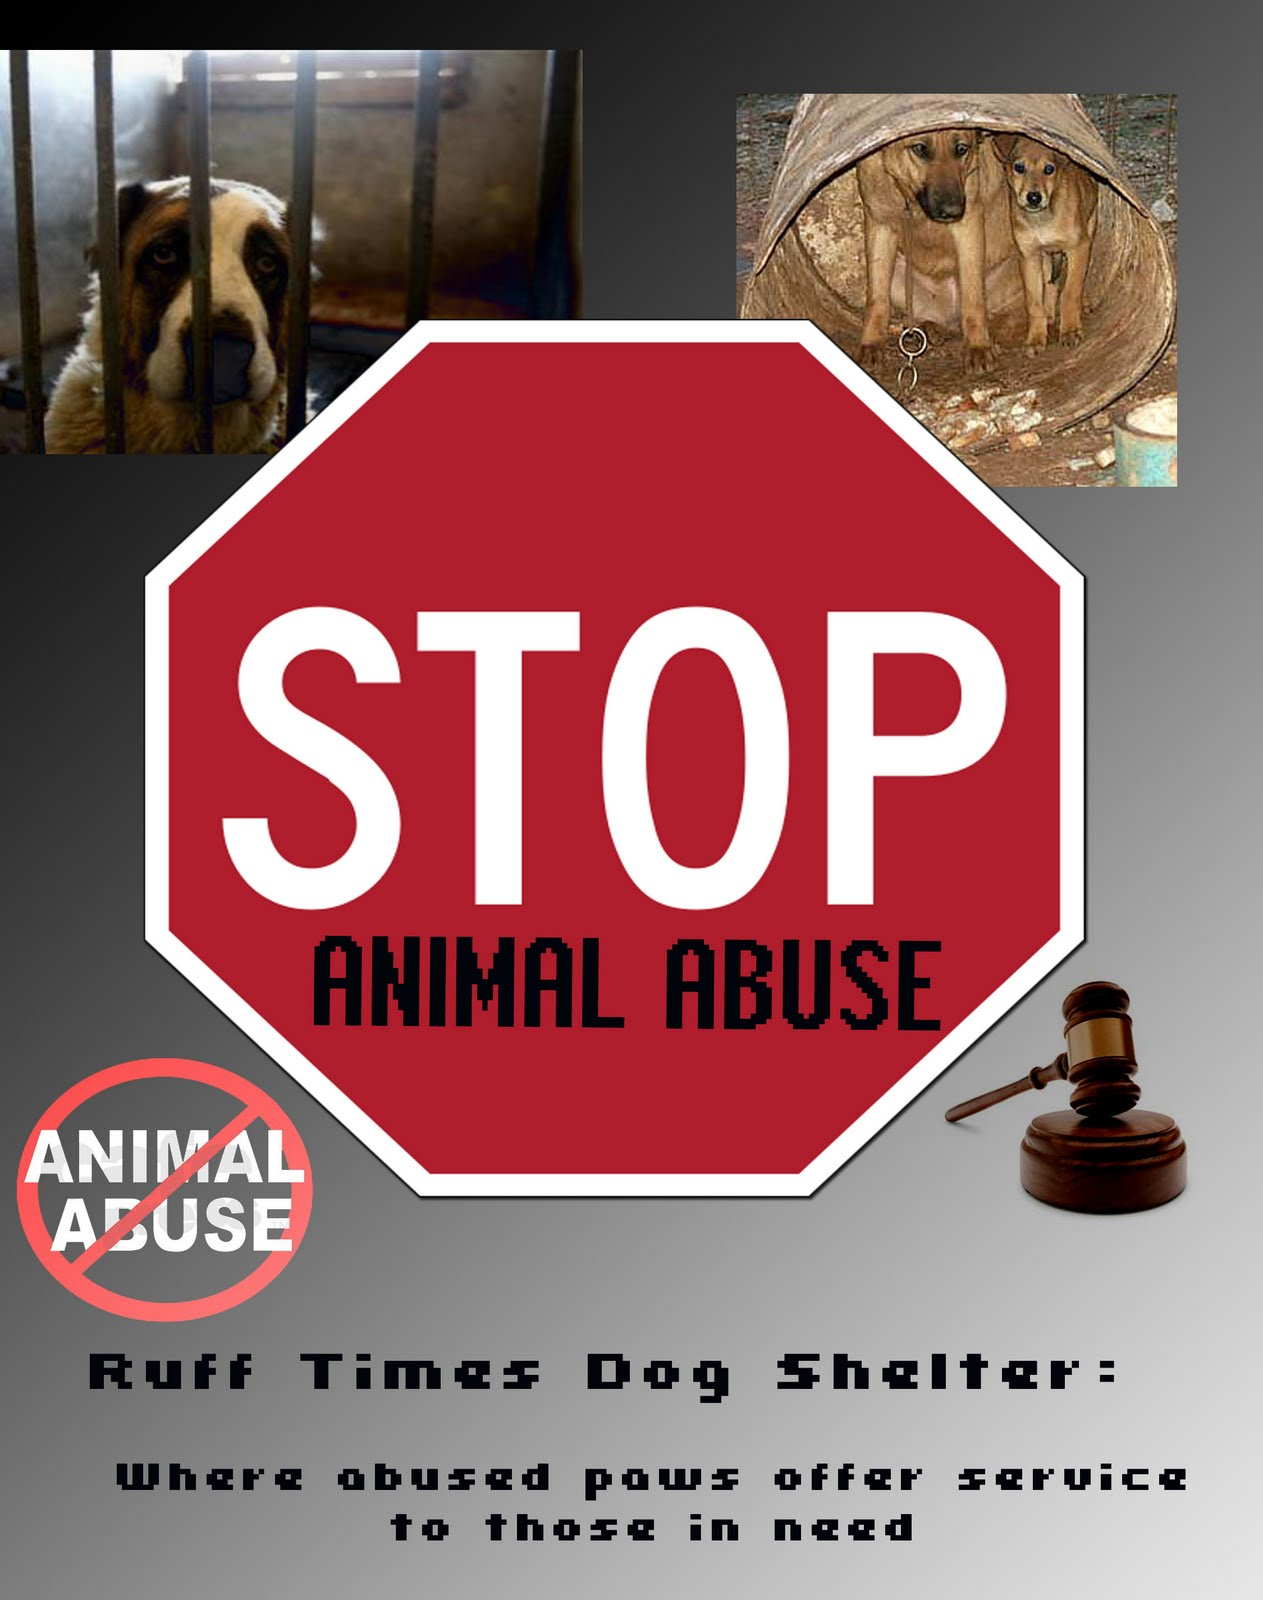 animal abuse posters ideas - photo #2